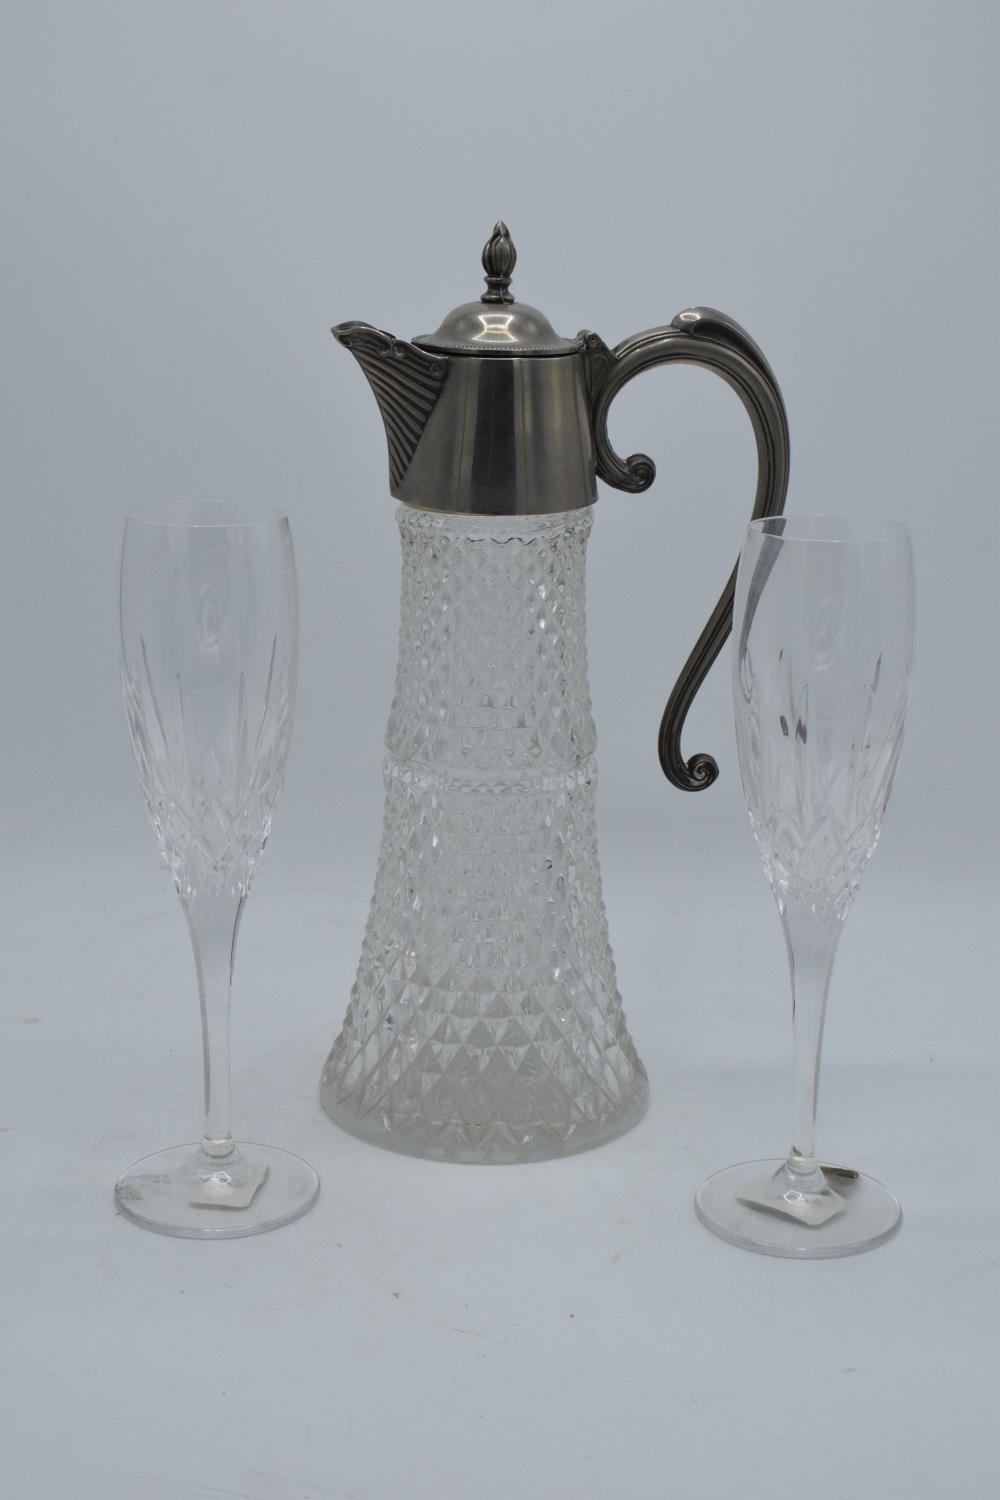 A pair of Waterford Crystal flute glasses in the 'Nocturn' pattern together with a large silver